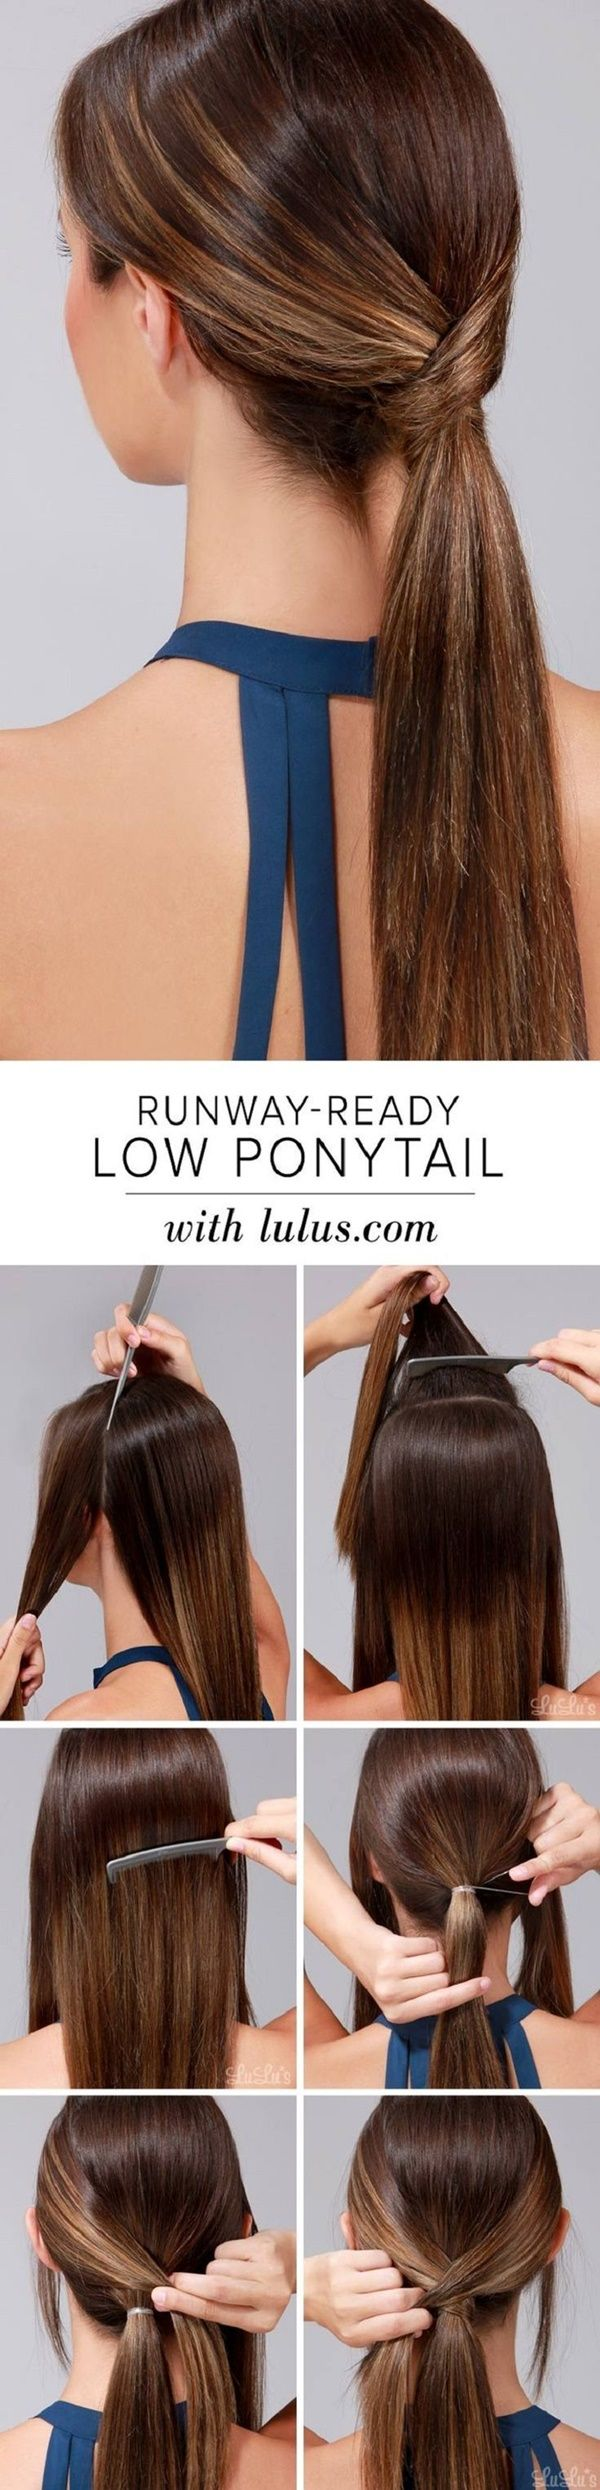 best 25+ low pony hairstyles ideas on pinterest | low ponytail